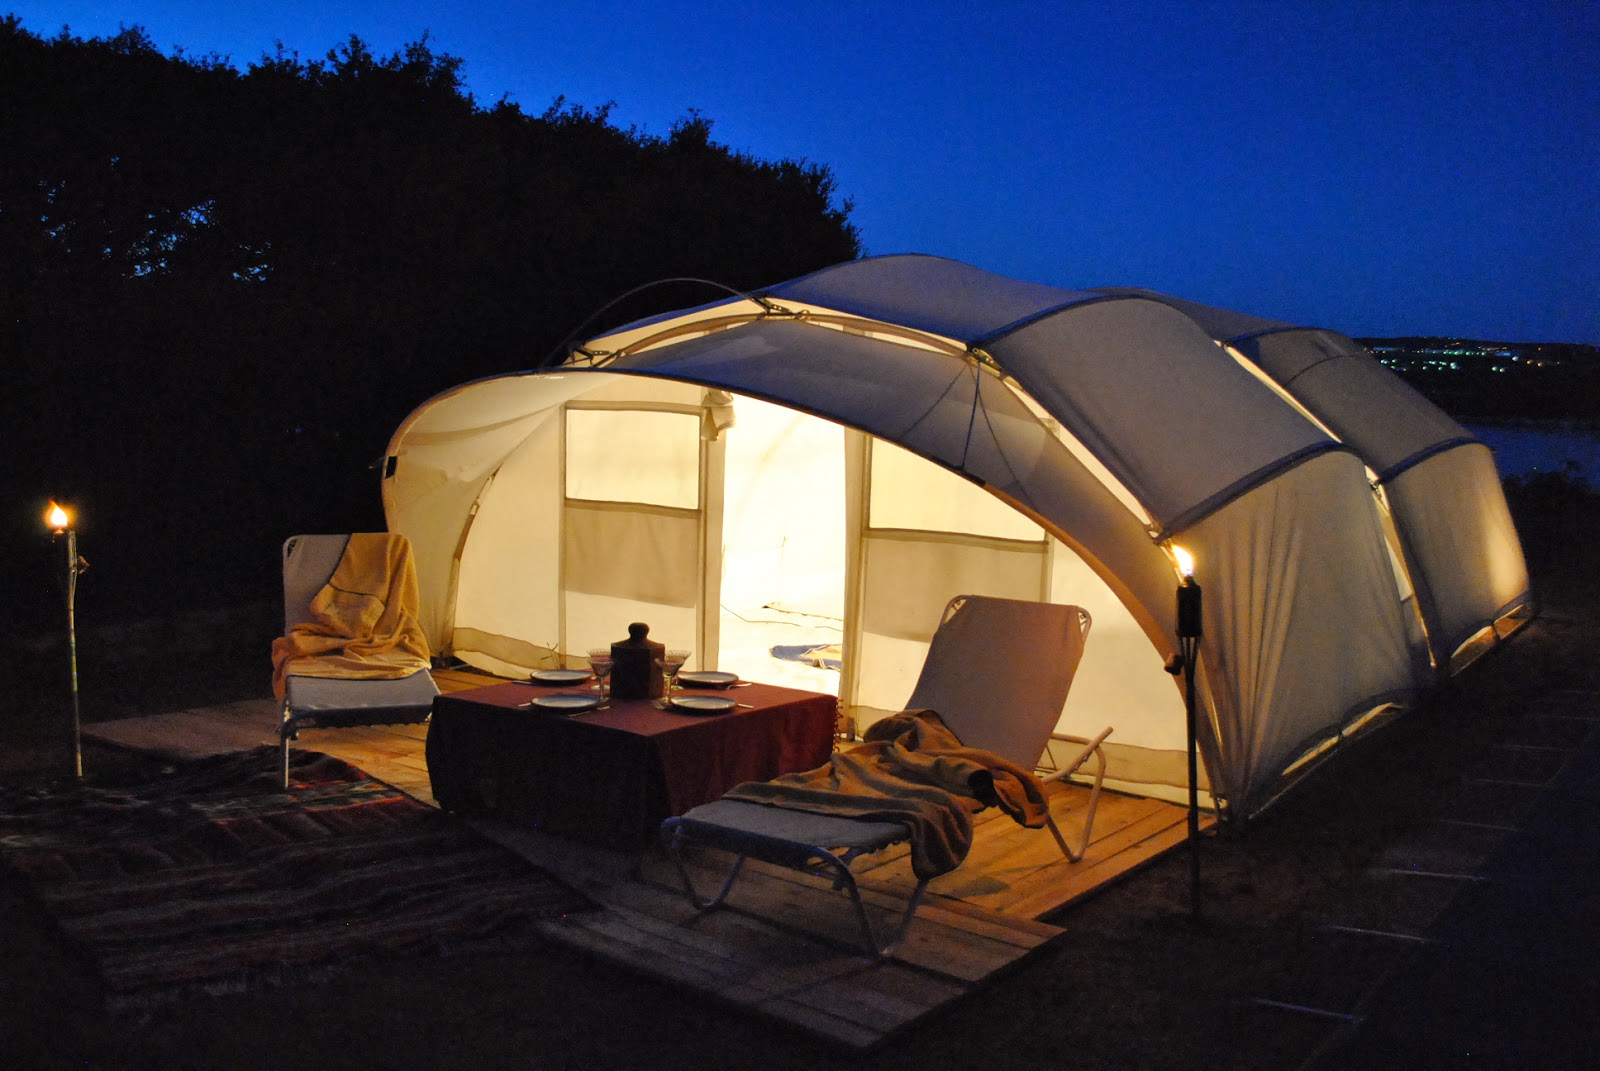 Tent Ctent glamping luxury cool